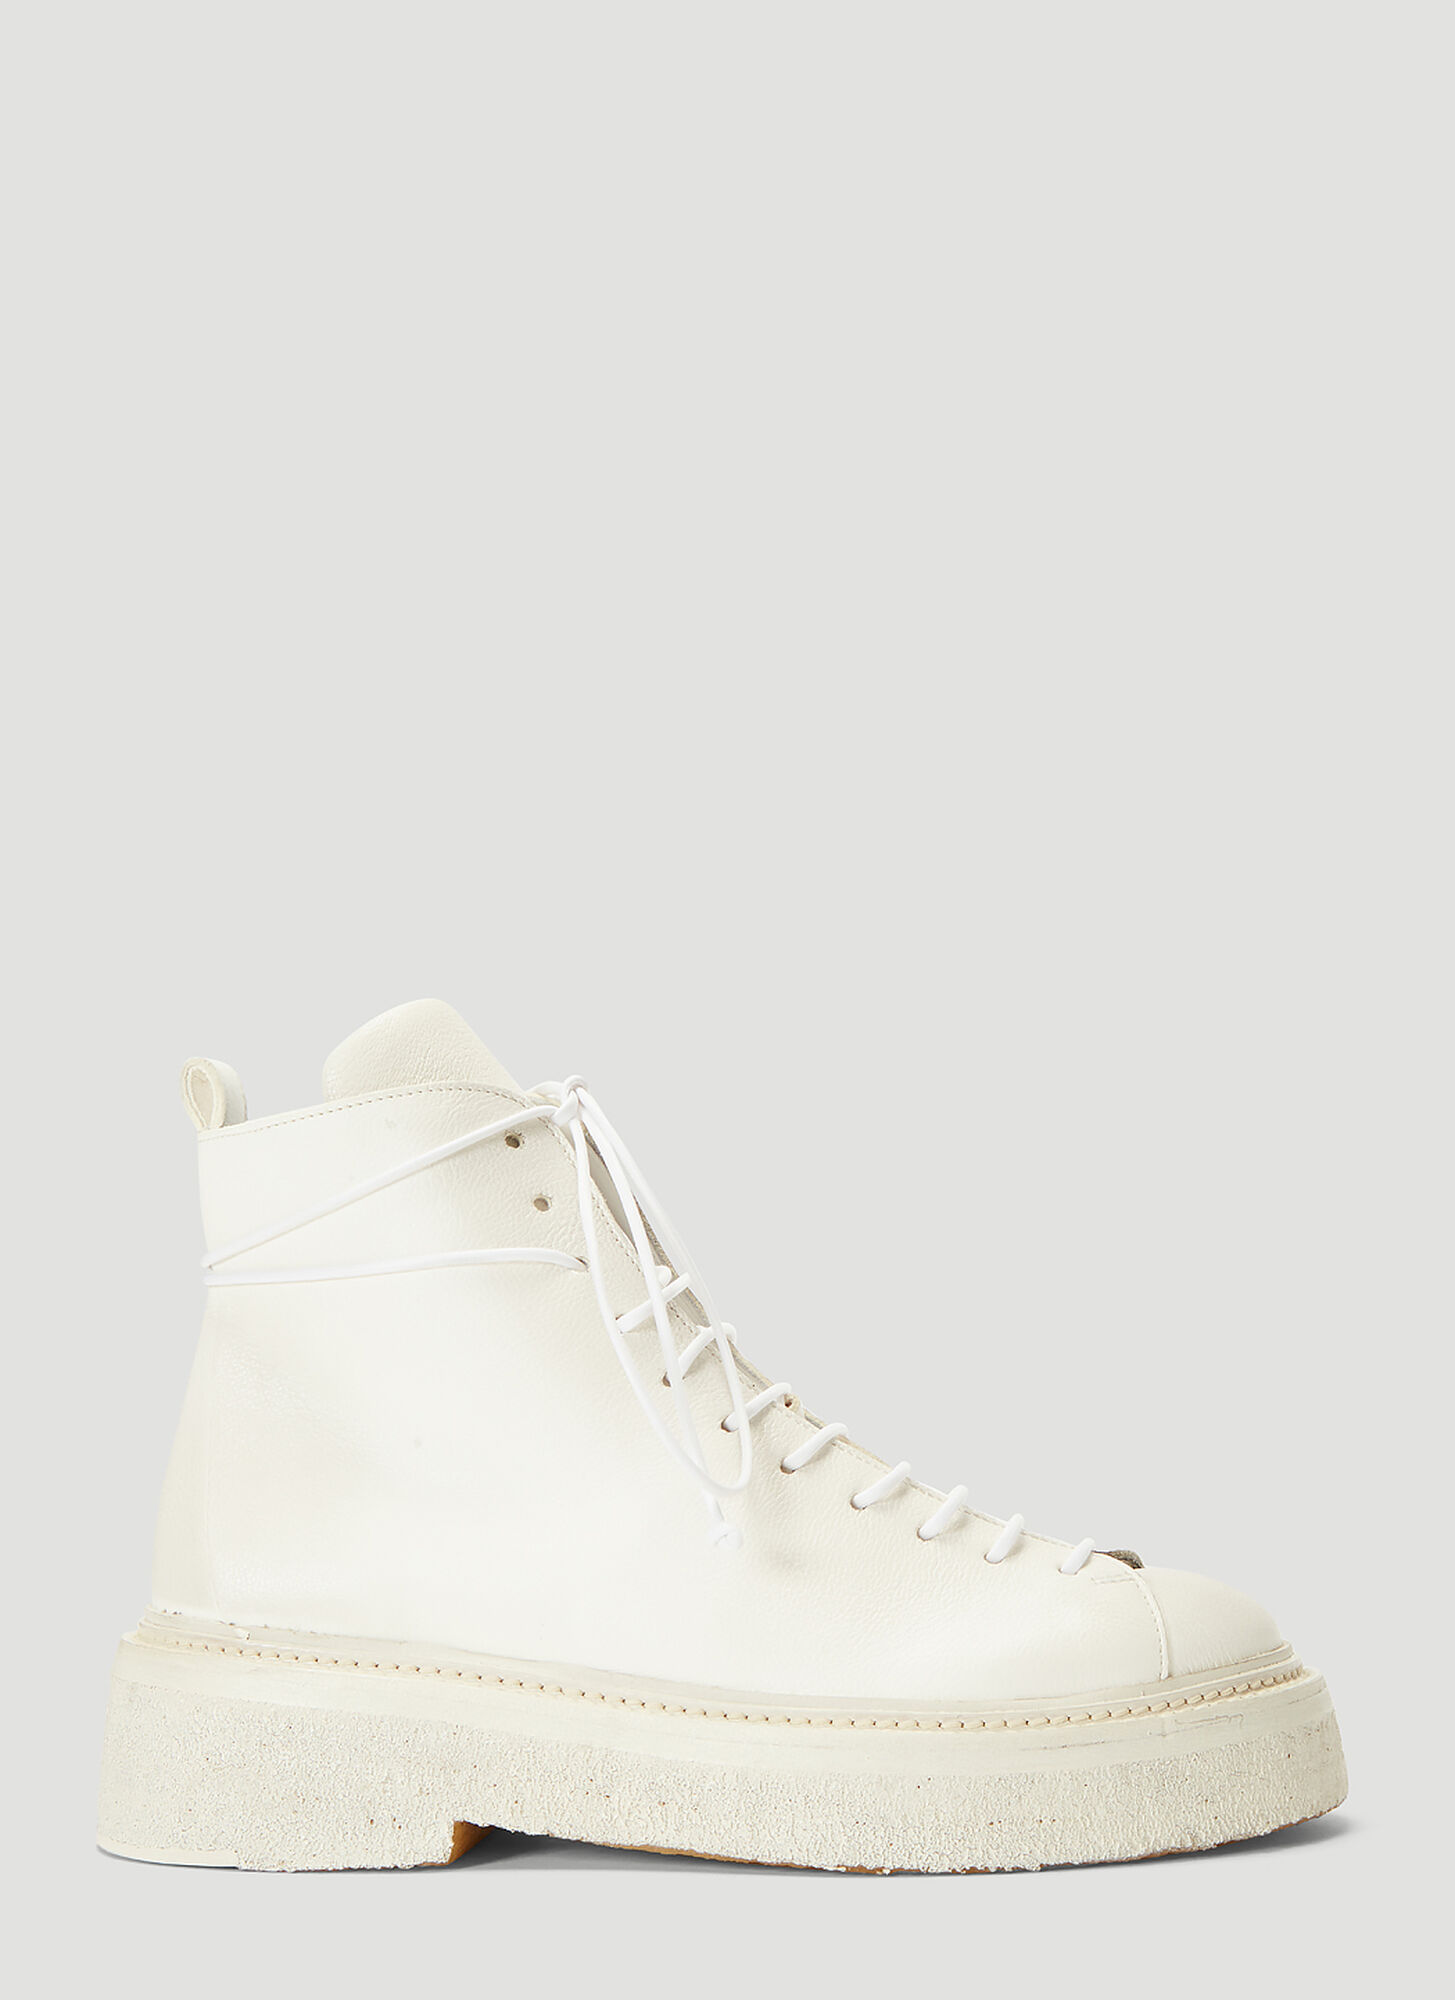 Marsell Purruccona Boots in White